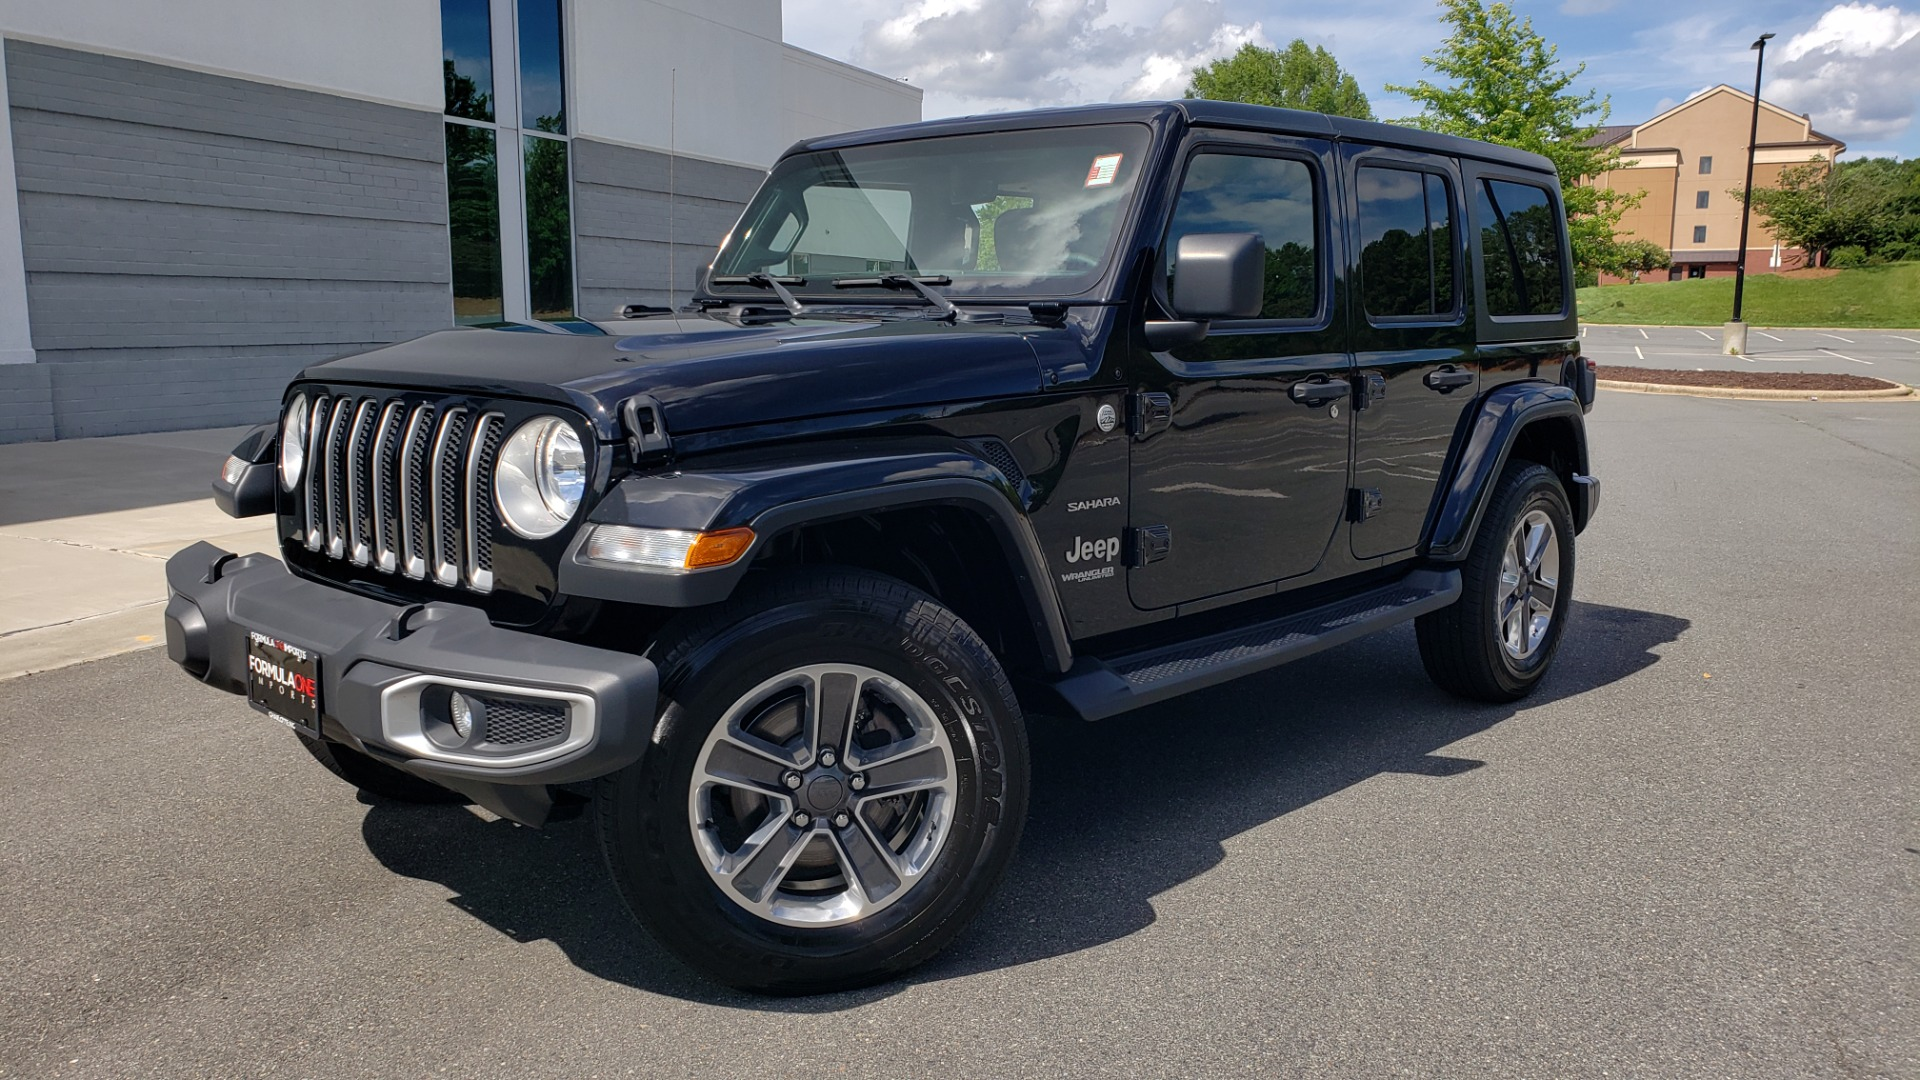 Used 2018 Jeep WRANGLER UNLIMITED SAHARA / 3.6L V6 / 6-SPD MAN / ALPINE / NAV / HTD STS / REARVIEW for sale $43,999 at Formula Imports in Charlotte NC 28227 1